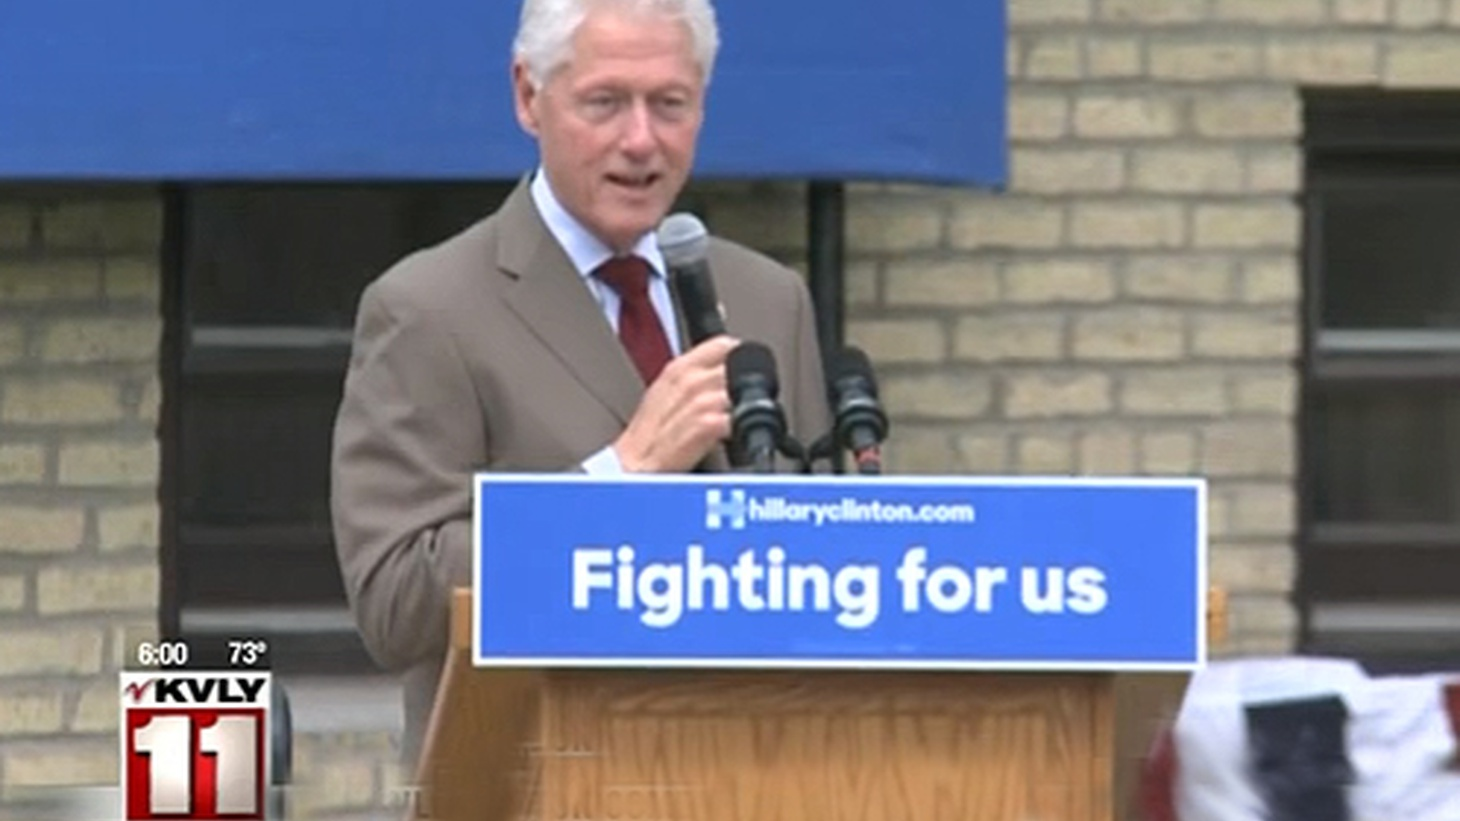 Bill Clinton is showing his age… and playing a role of a different kind on the presidential campaign trail.Last week the former President of the United States was campaigning on a farm in Fargo, North Dakota, in just one of many stops he's making in small towns on behalf of his wife, Hillary Clinton.